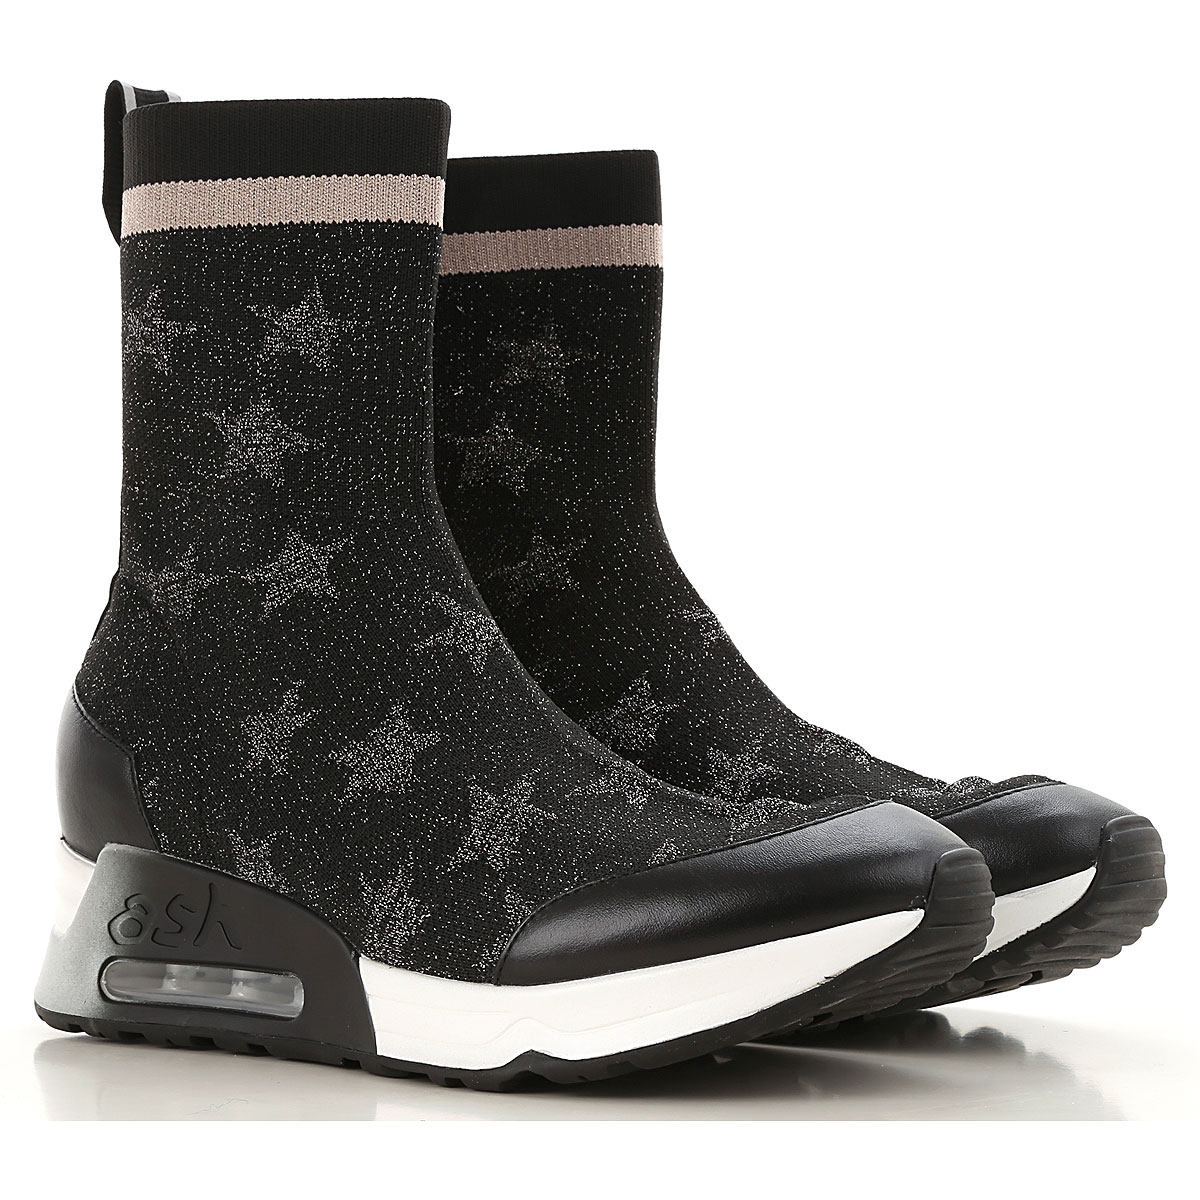 Ash Sneakers for Women in Outlet Black USA - GOOFASH